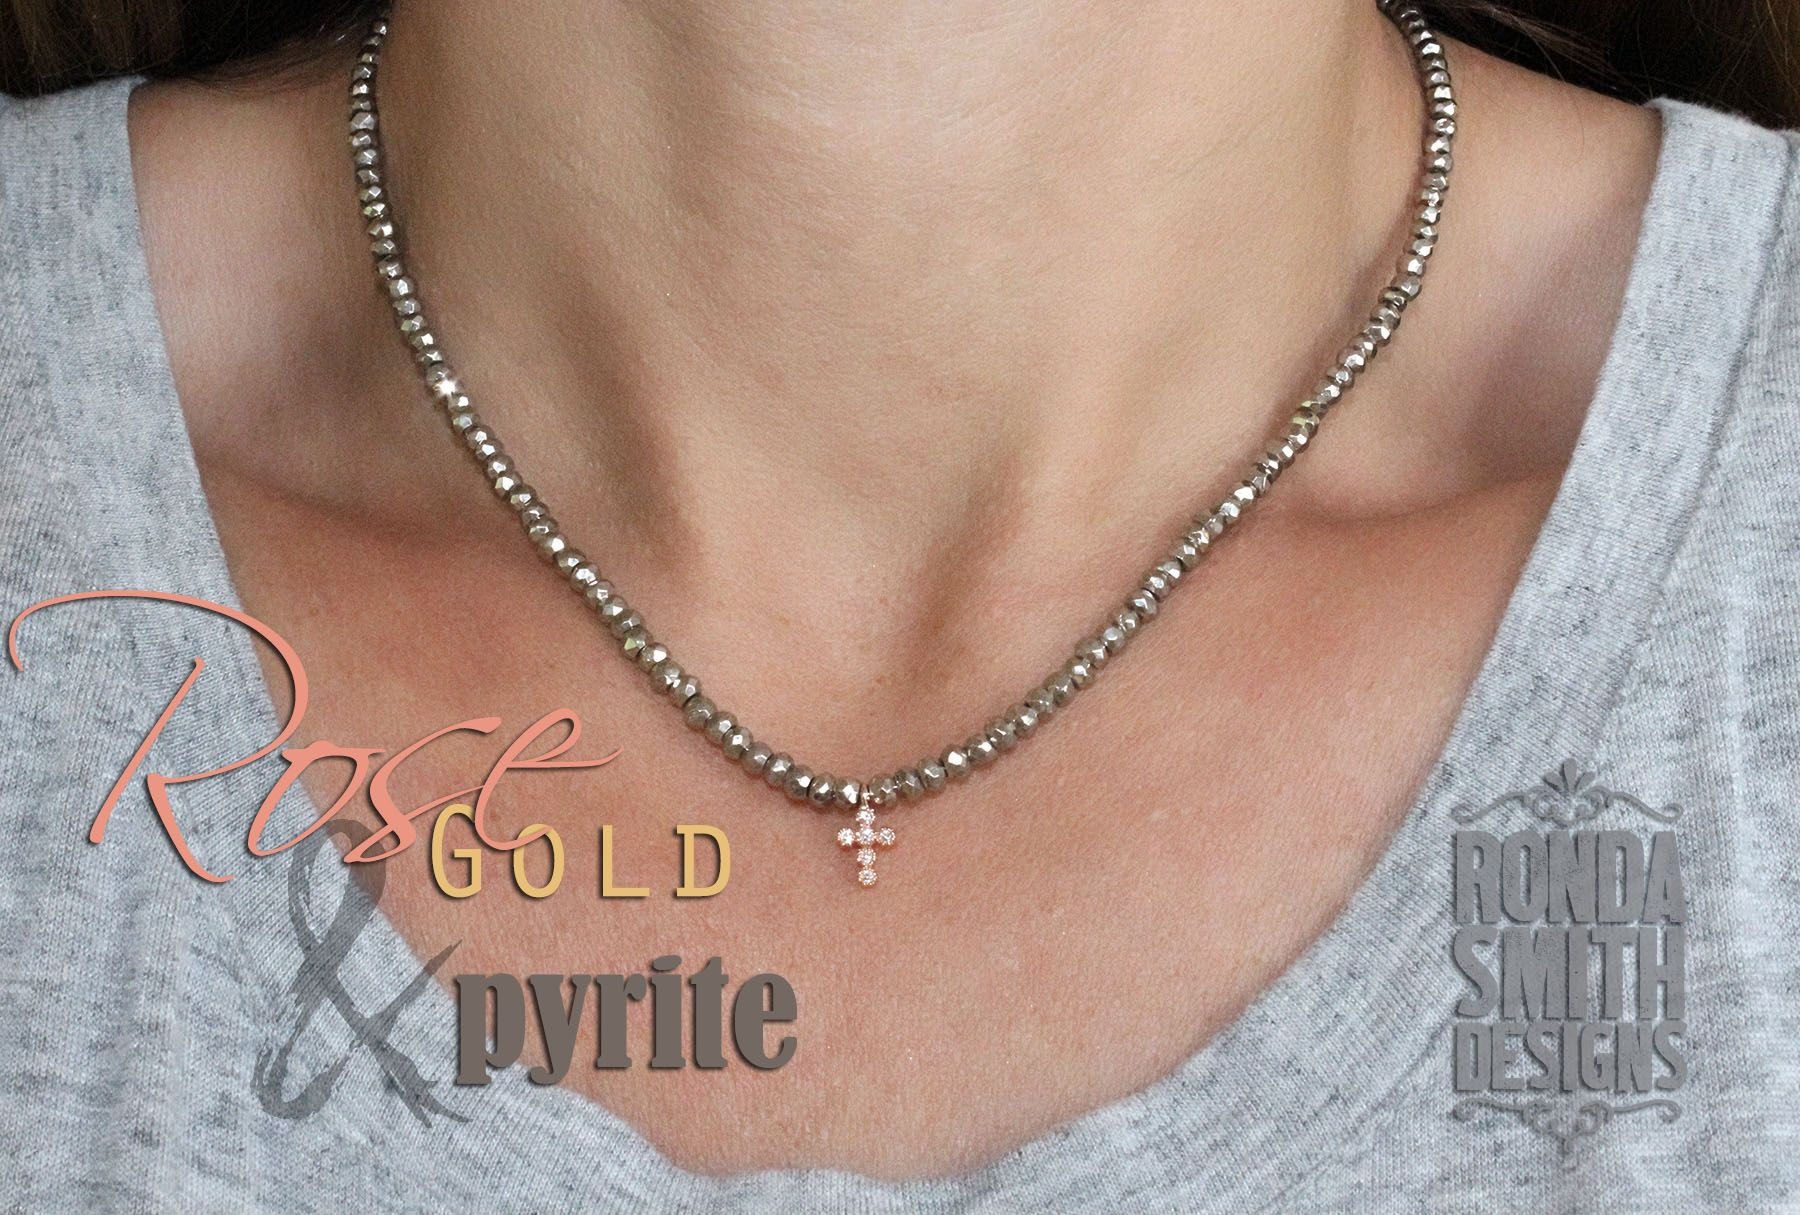 LOVE! pyrite necklace with rose gold cross.